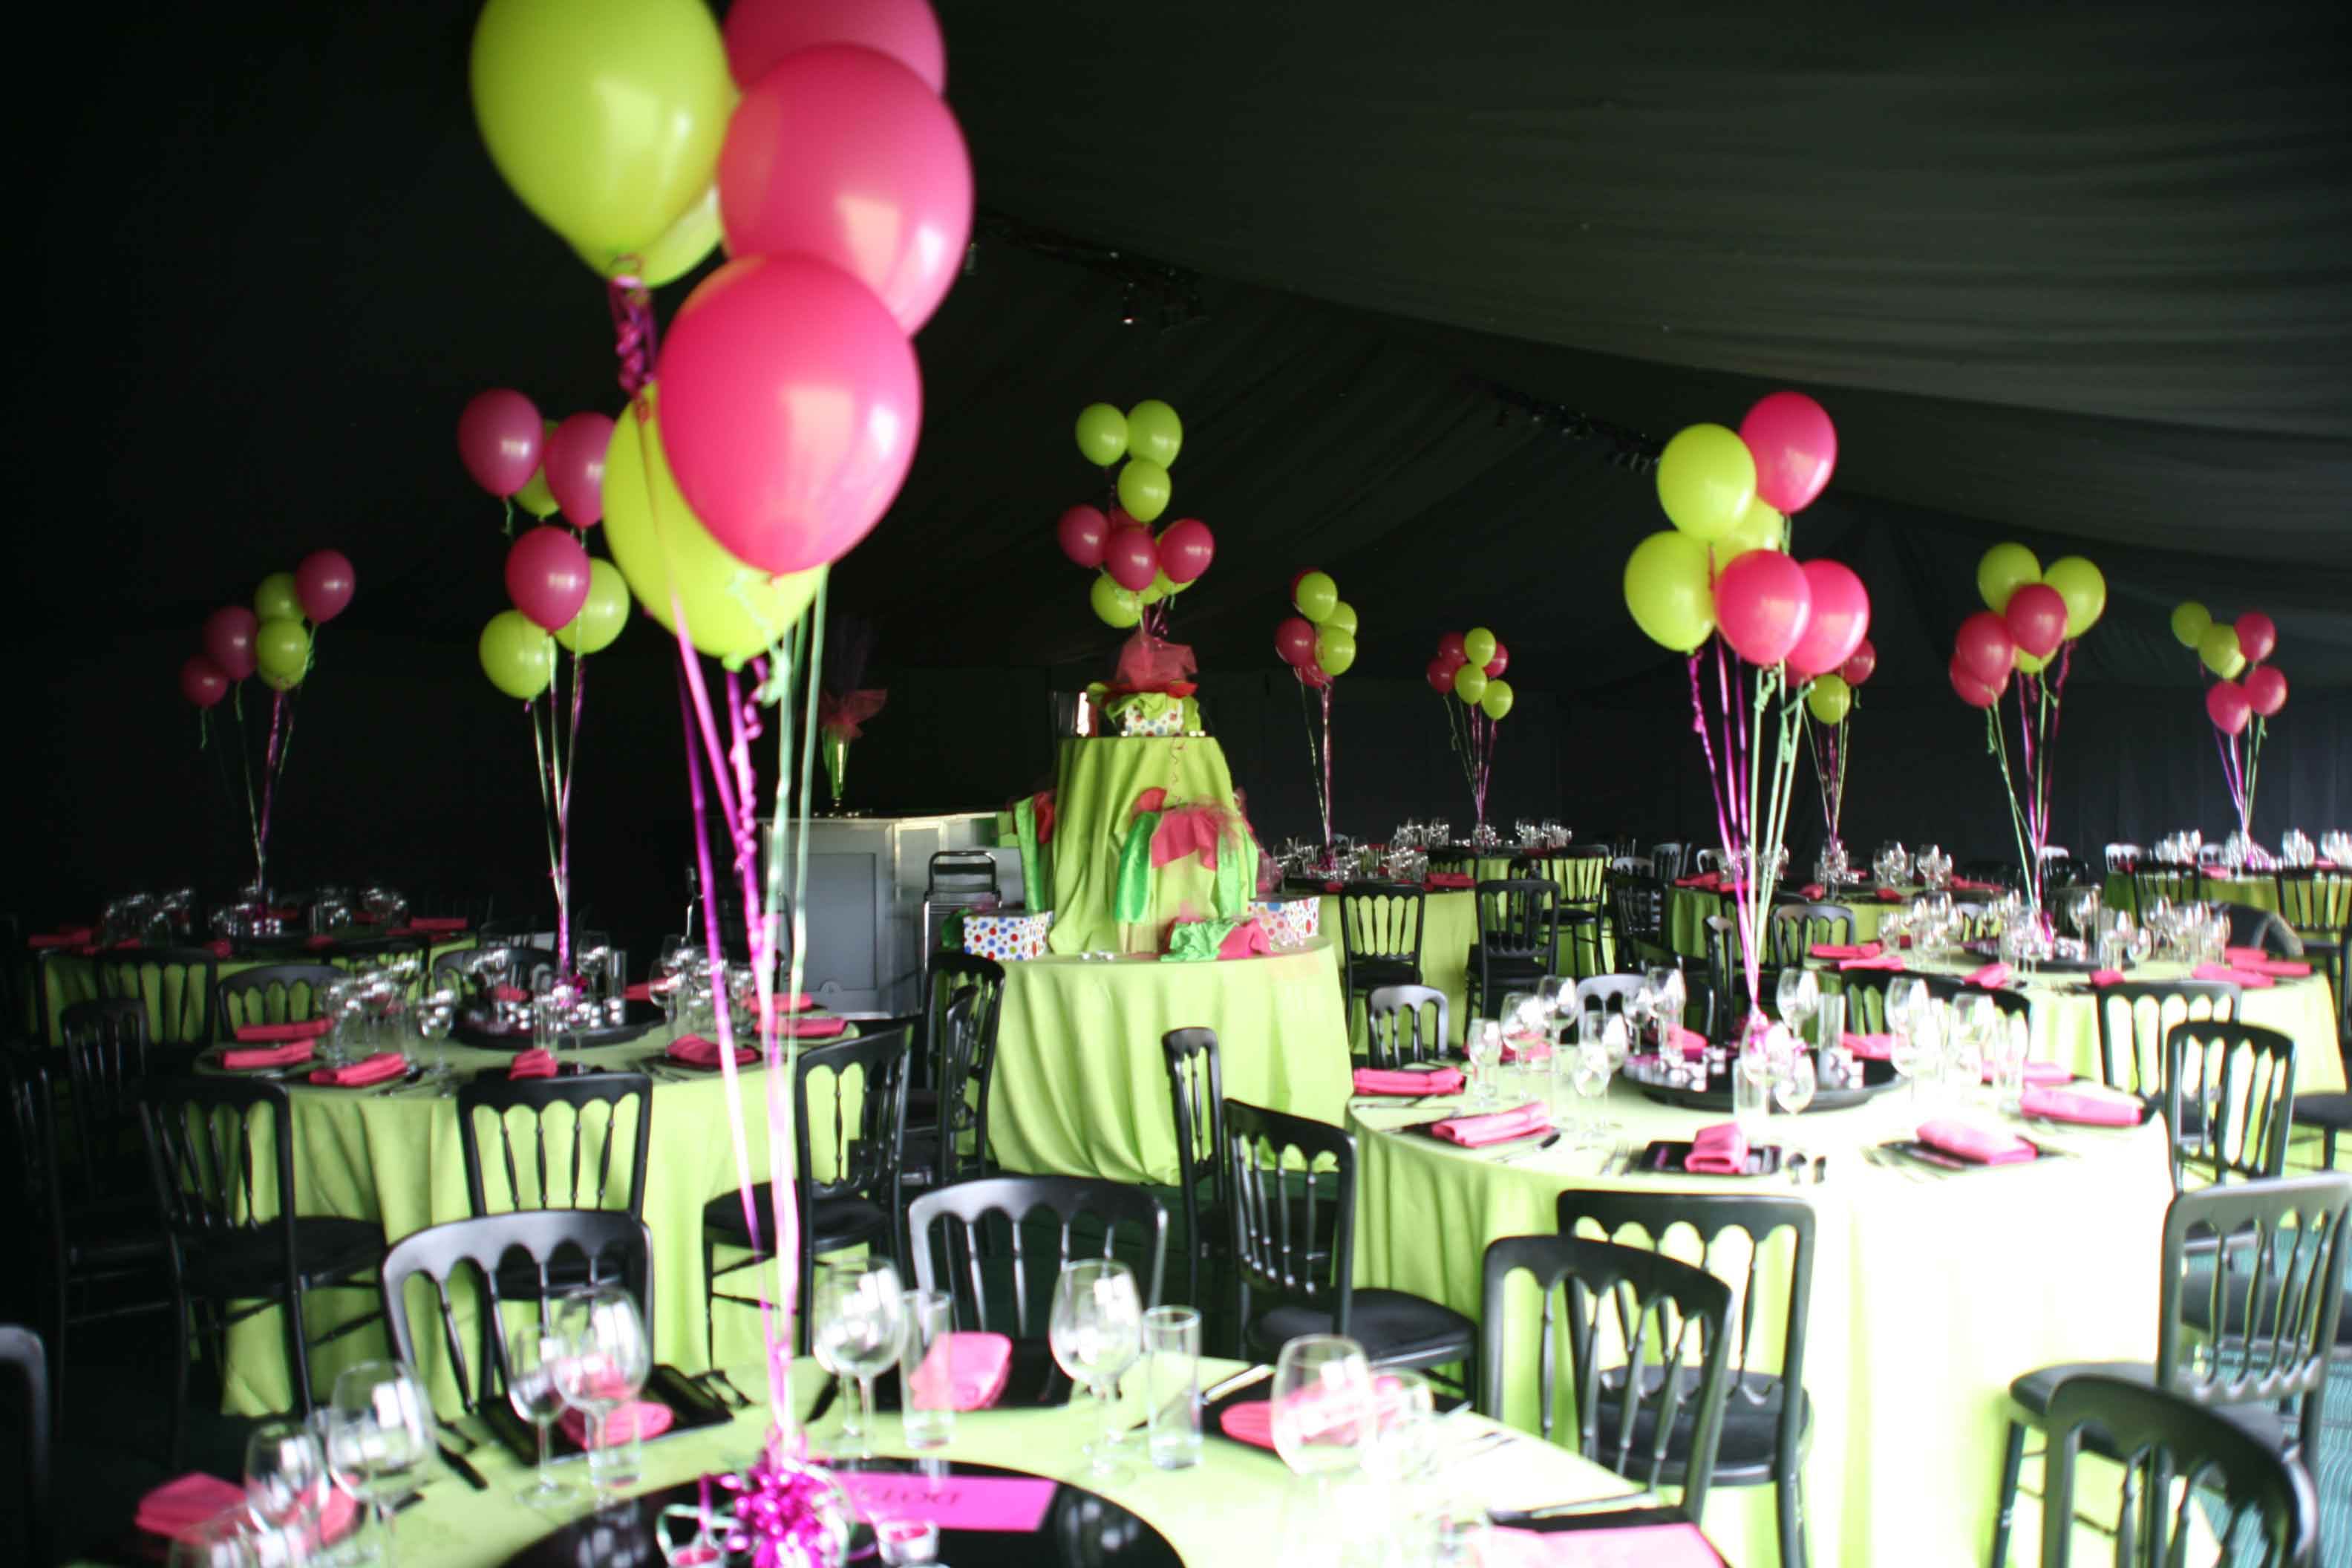 18th birthday party themes ; best-18th-birthday-party-ideas